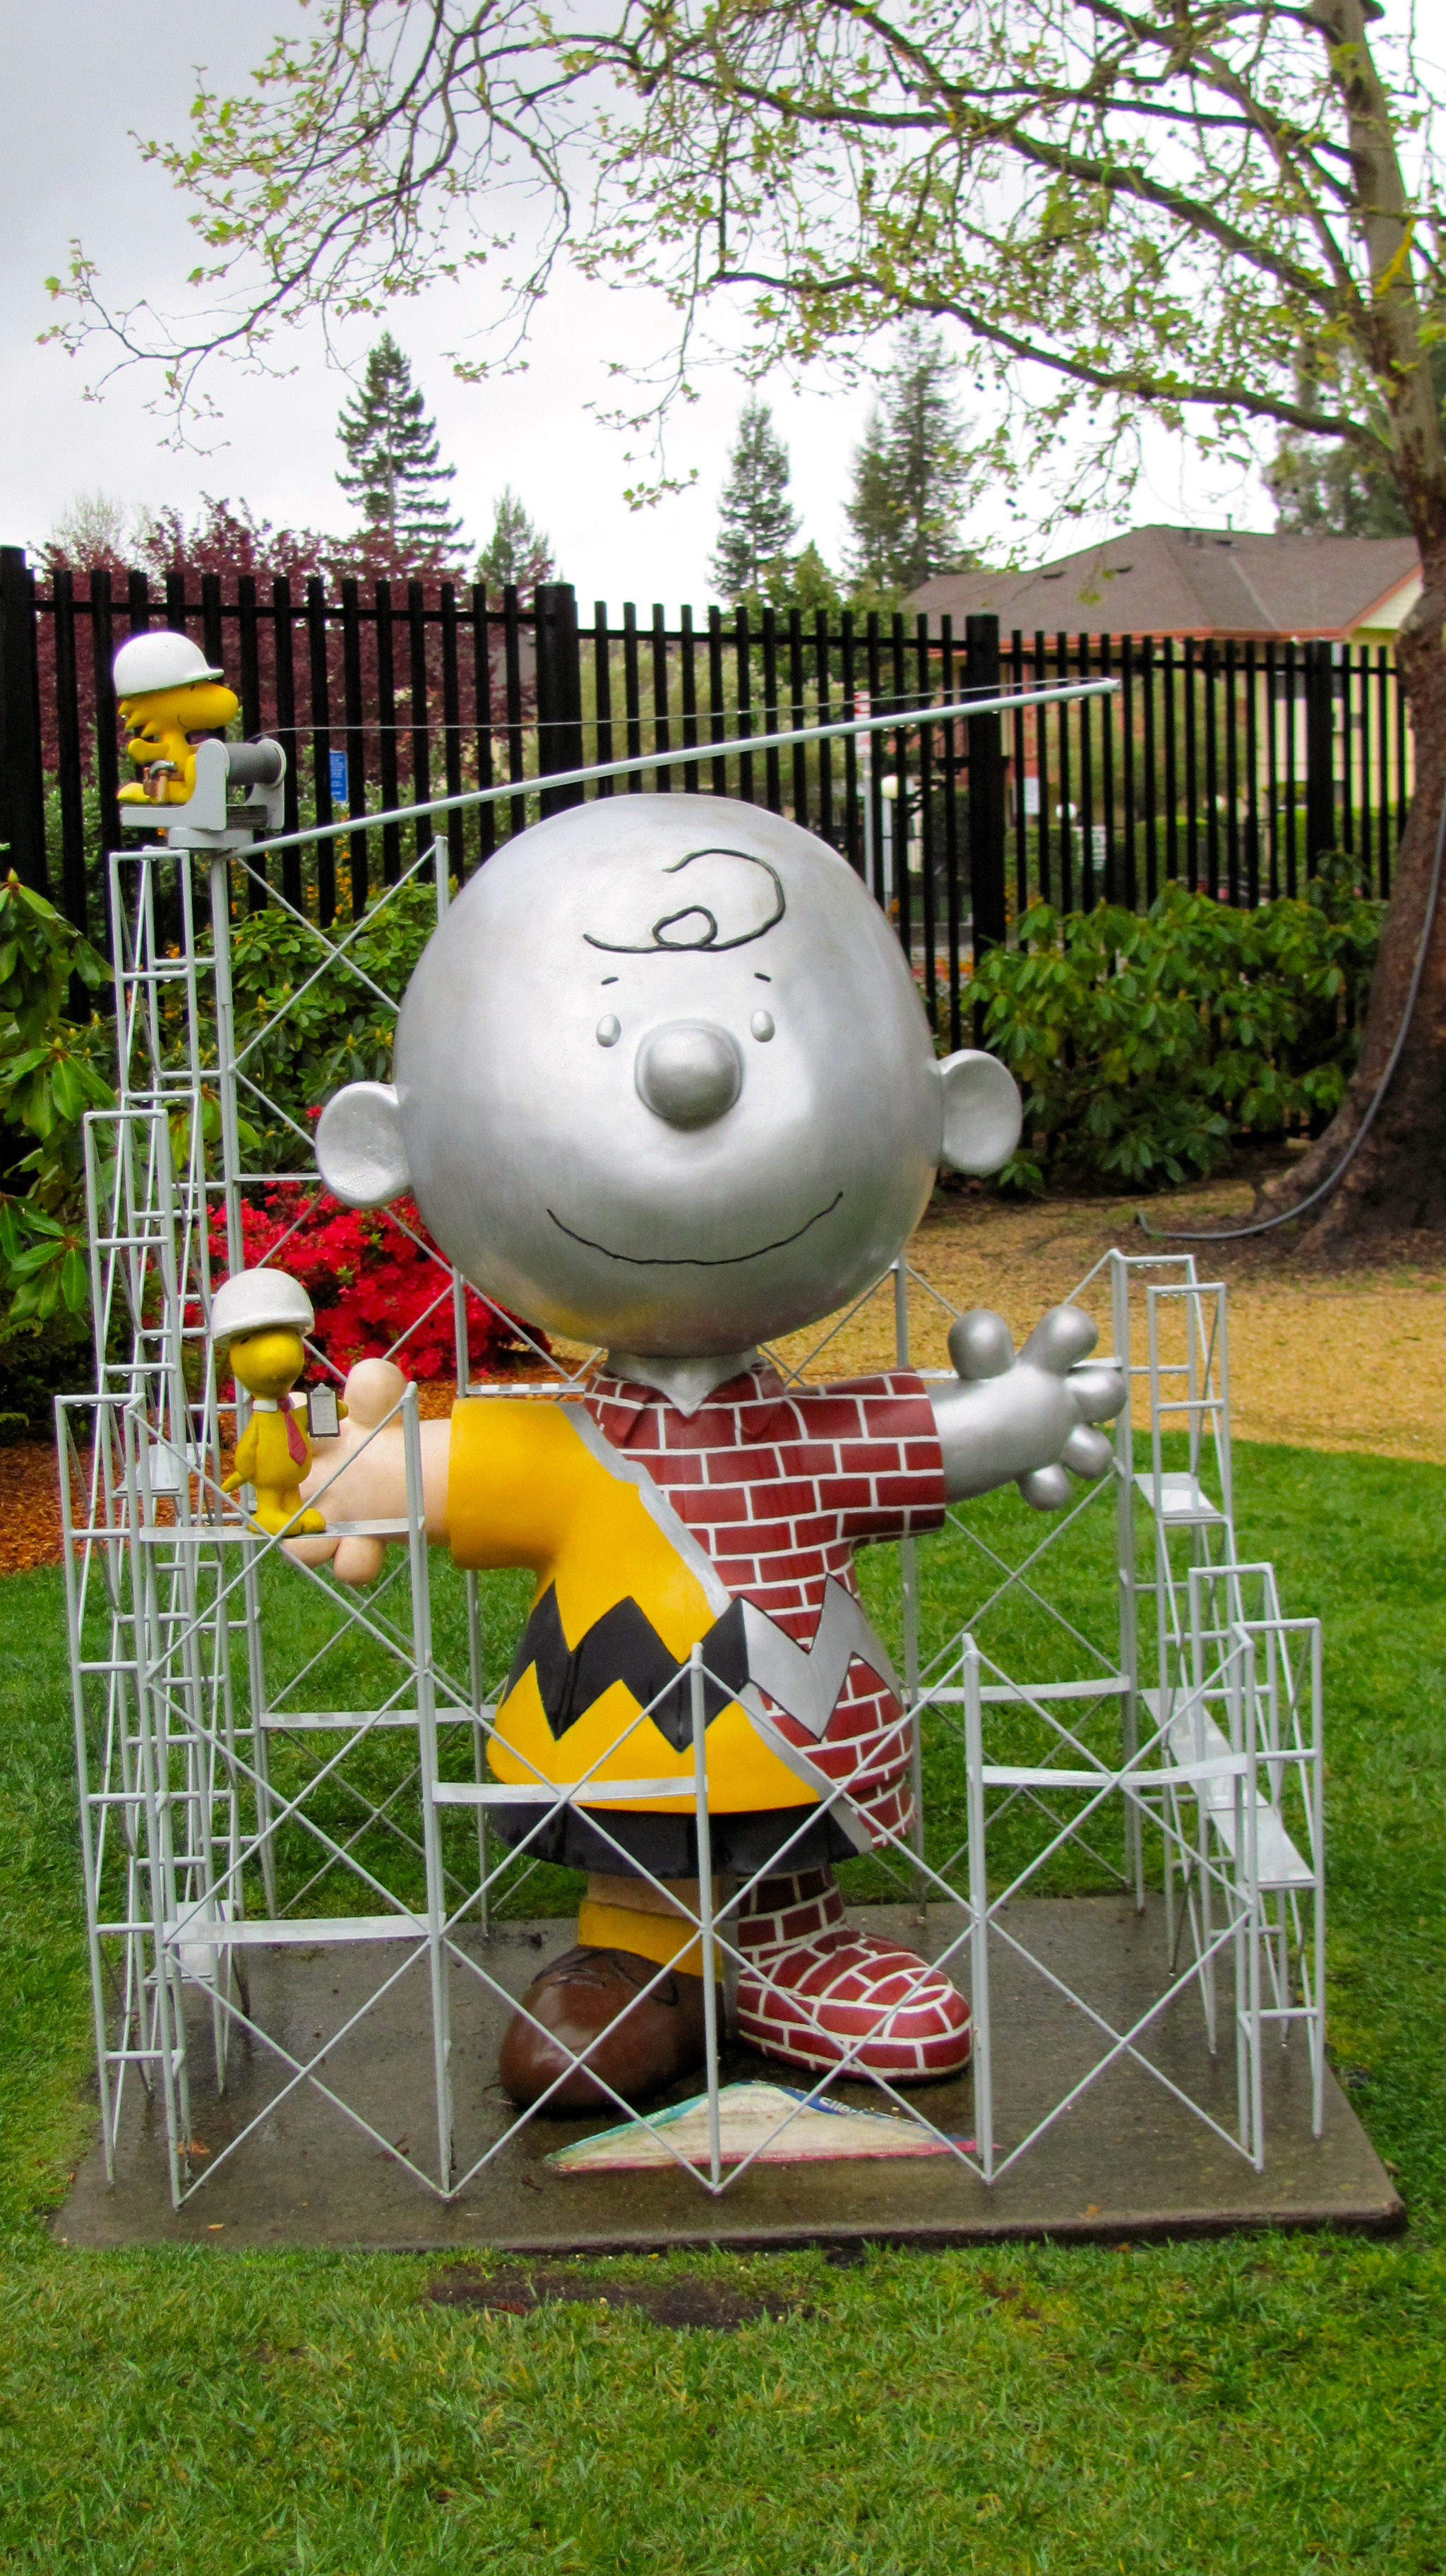 All things snoopy d f g hailson - Charlie brown bilder ...